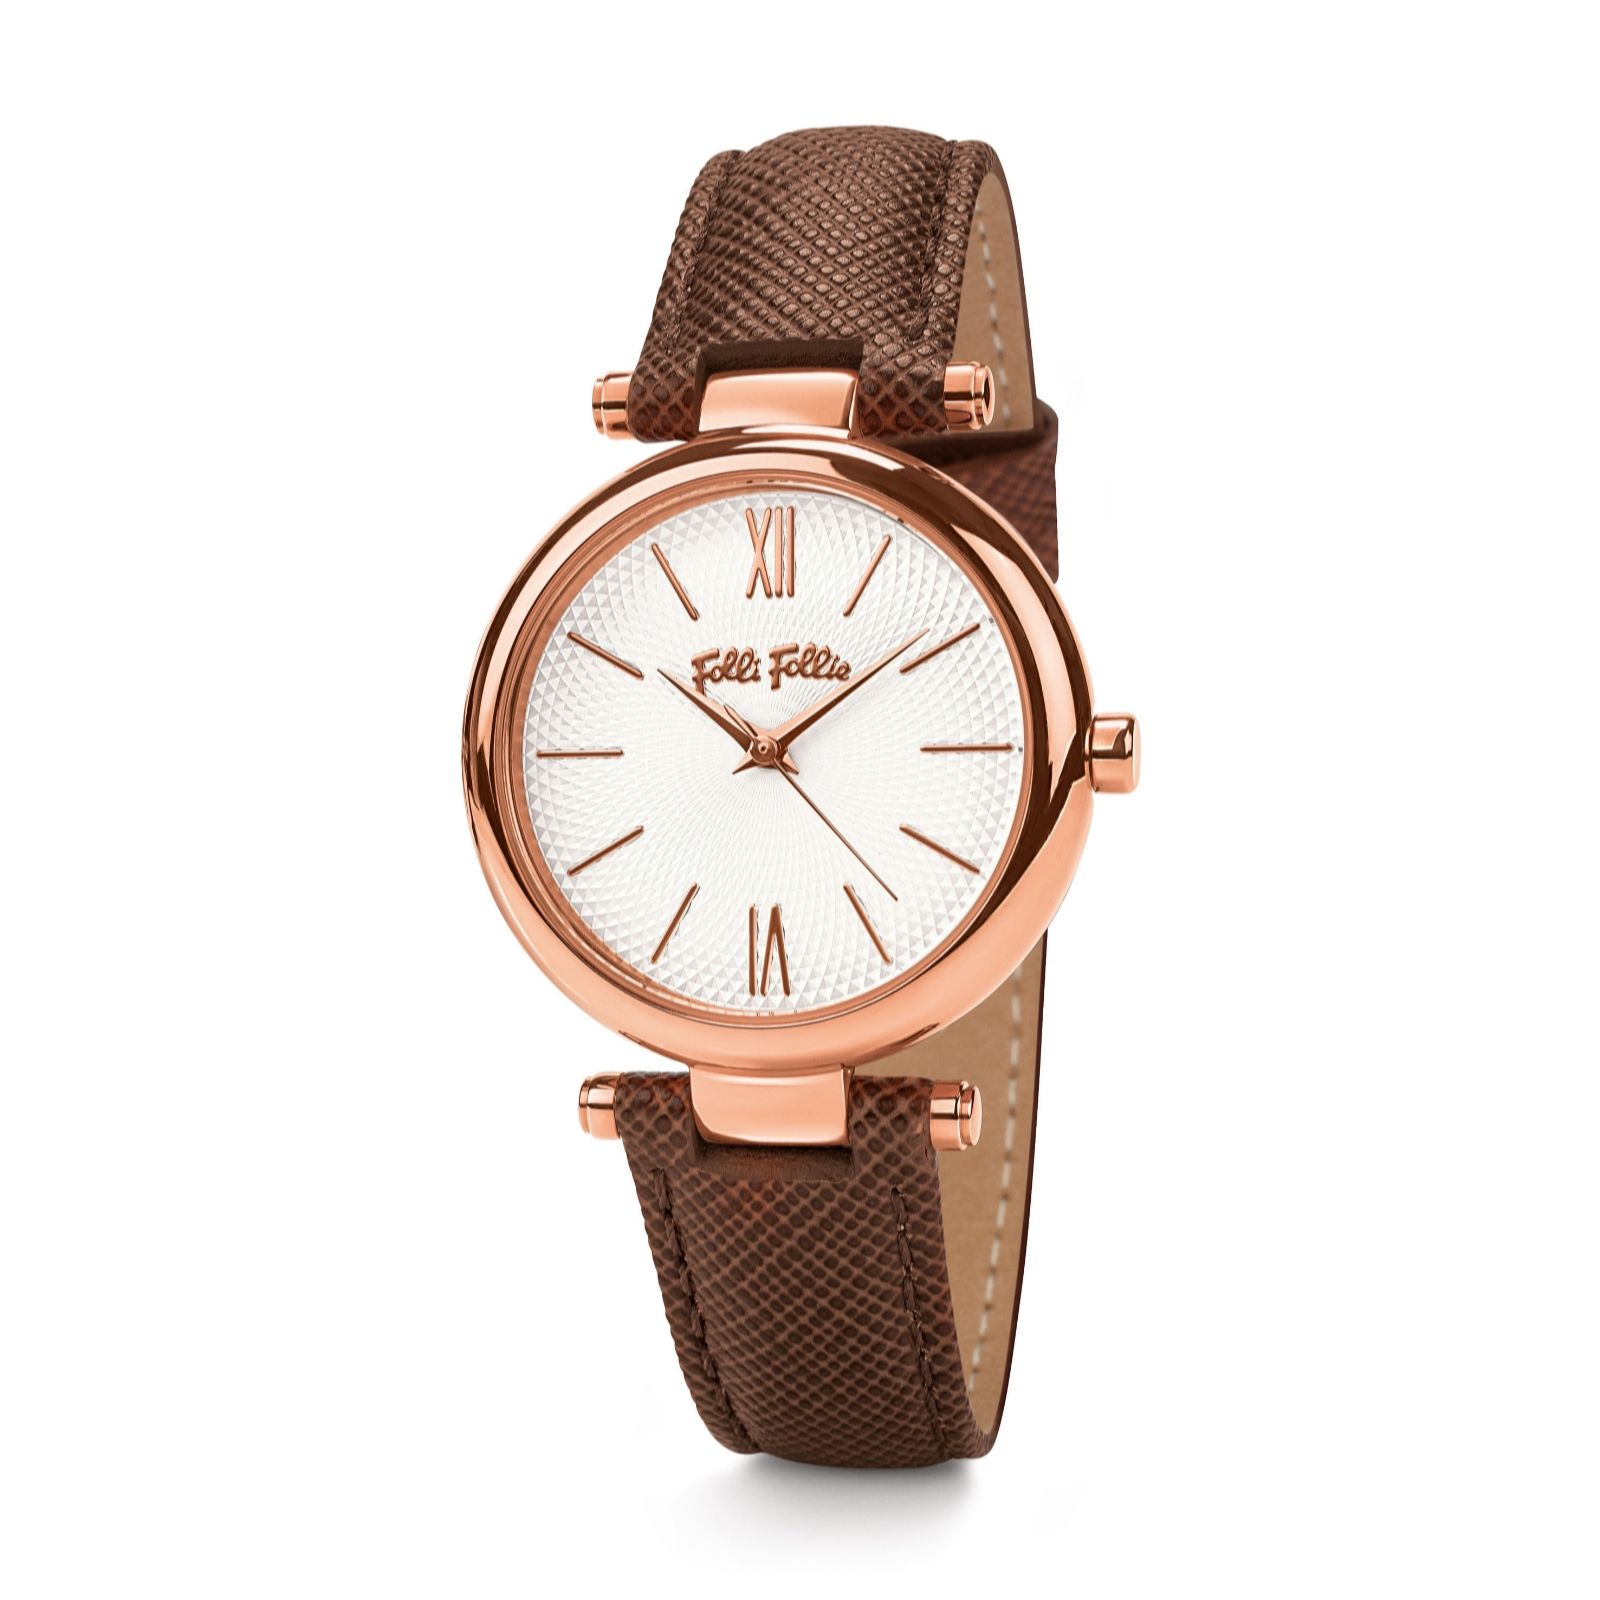 Leather Strap Rose Gold Watch Folli Follie Cyclos Rose Gold Brown Leather Strap Watch Qvc Uk